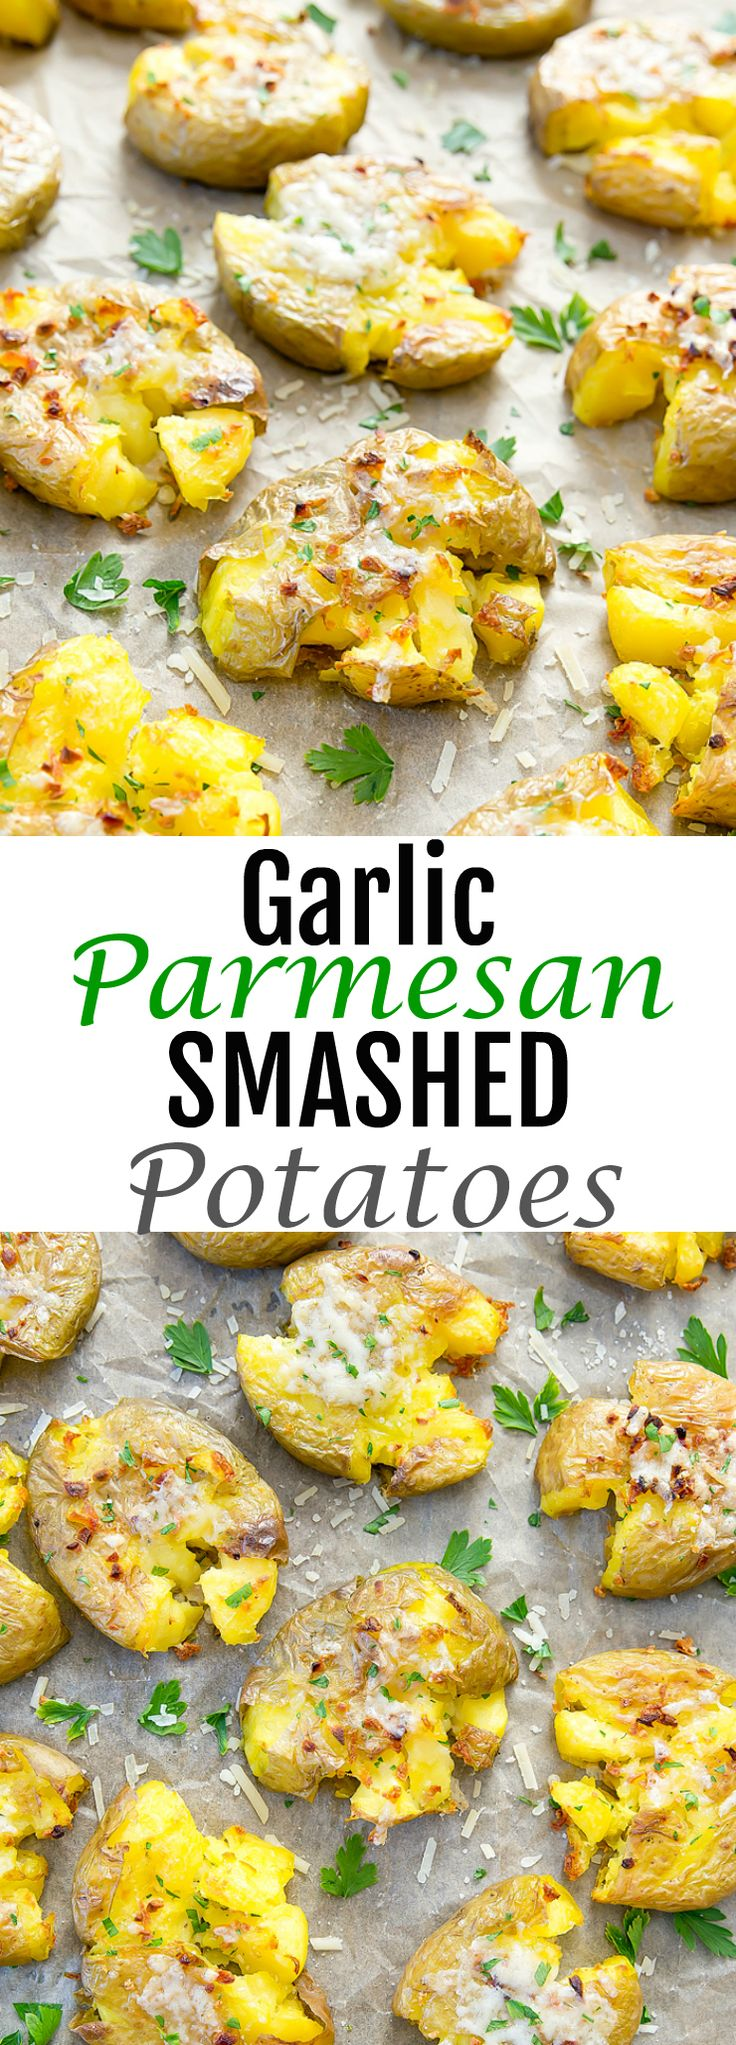 Garlic Parmesan Smashed Potatoes. An easy side dish where the potatoes are both soft and crispy.